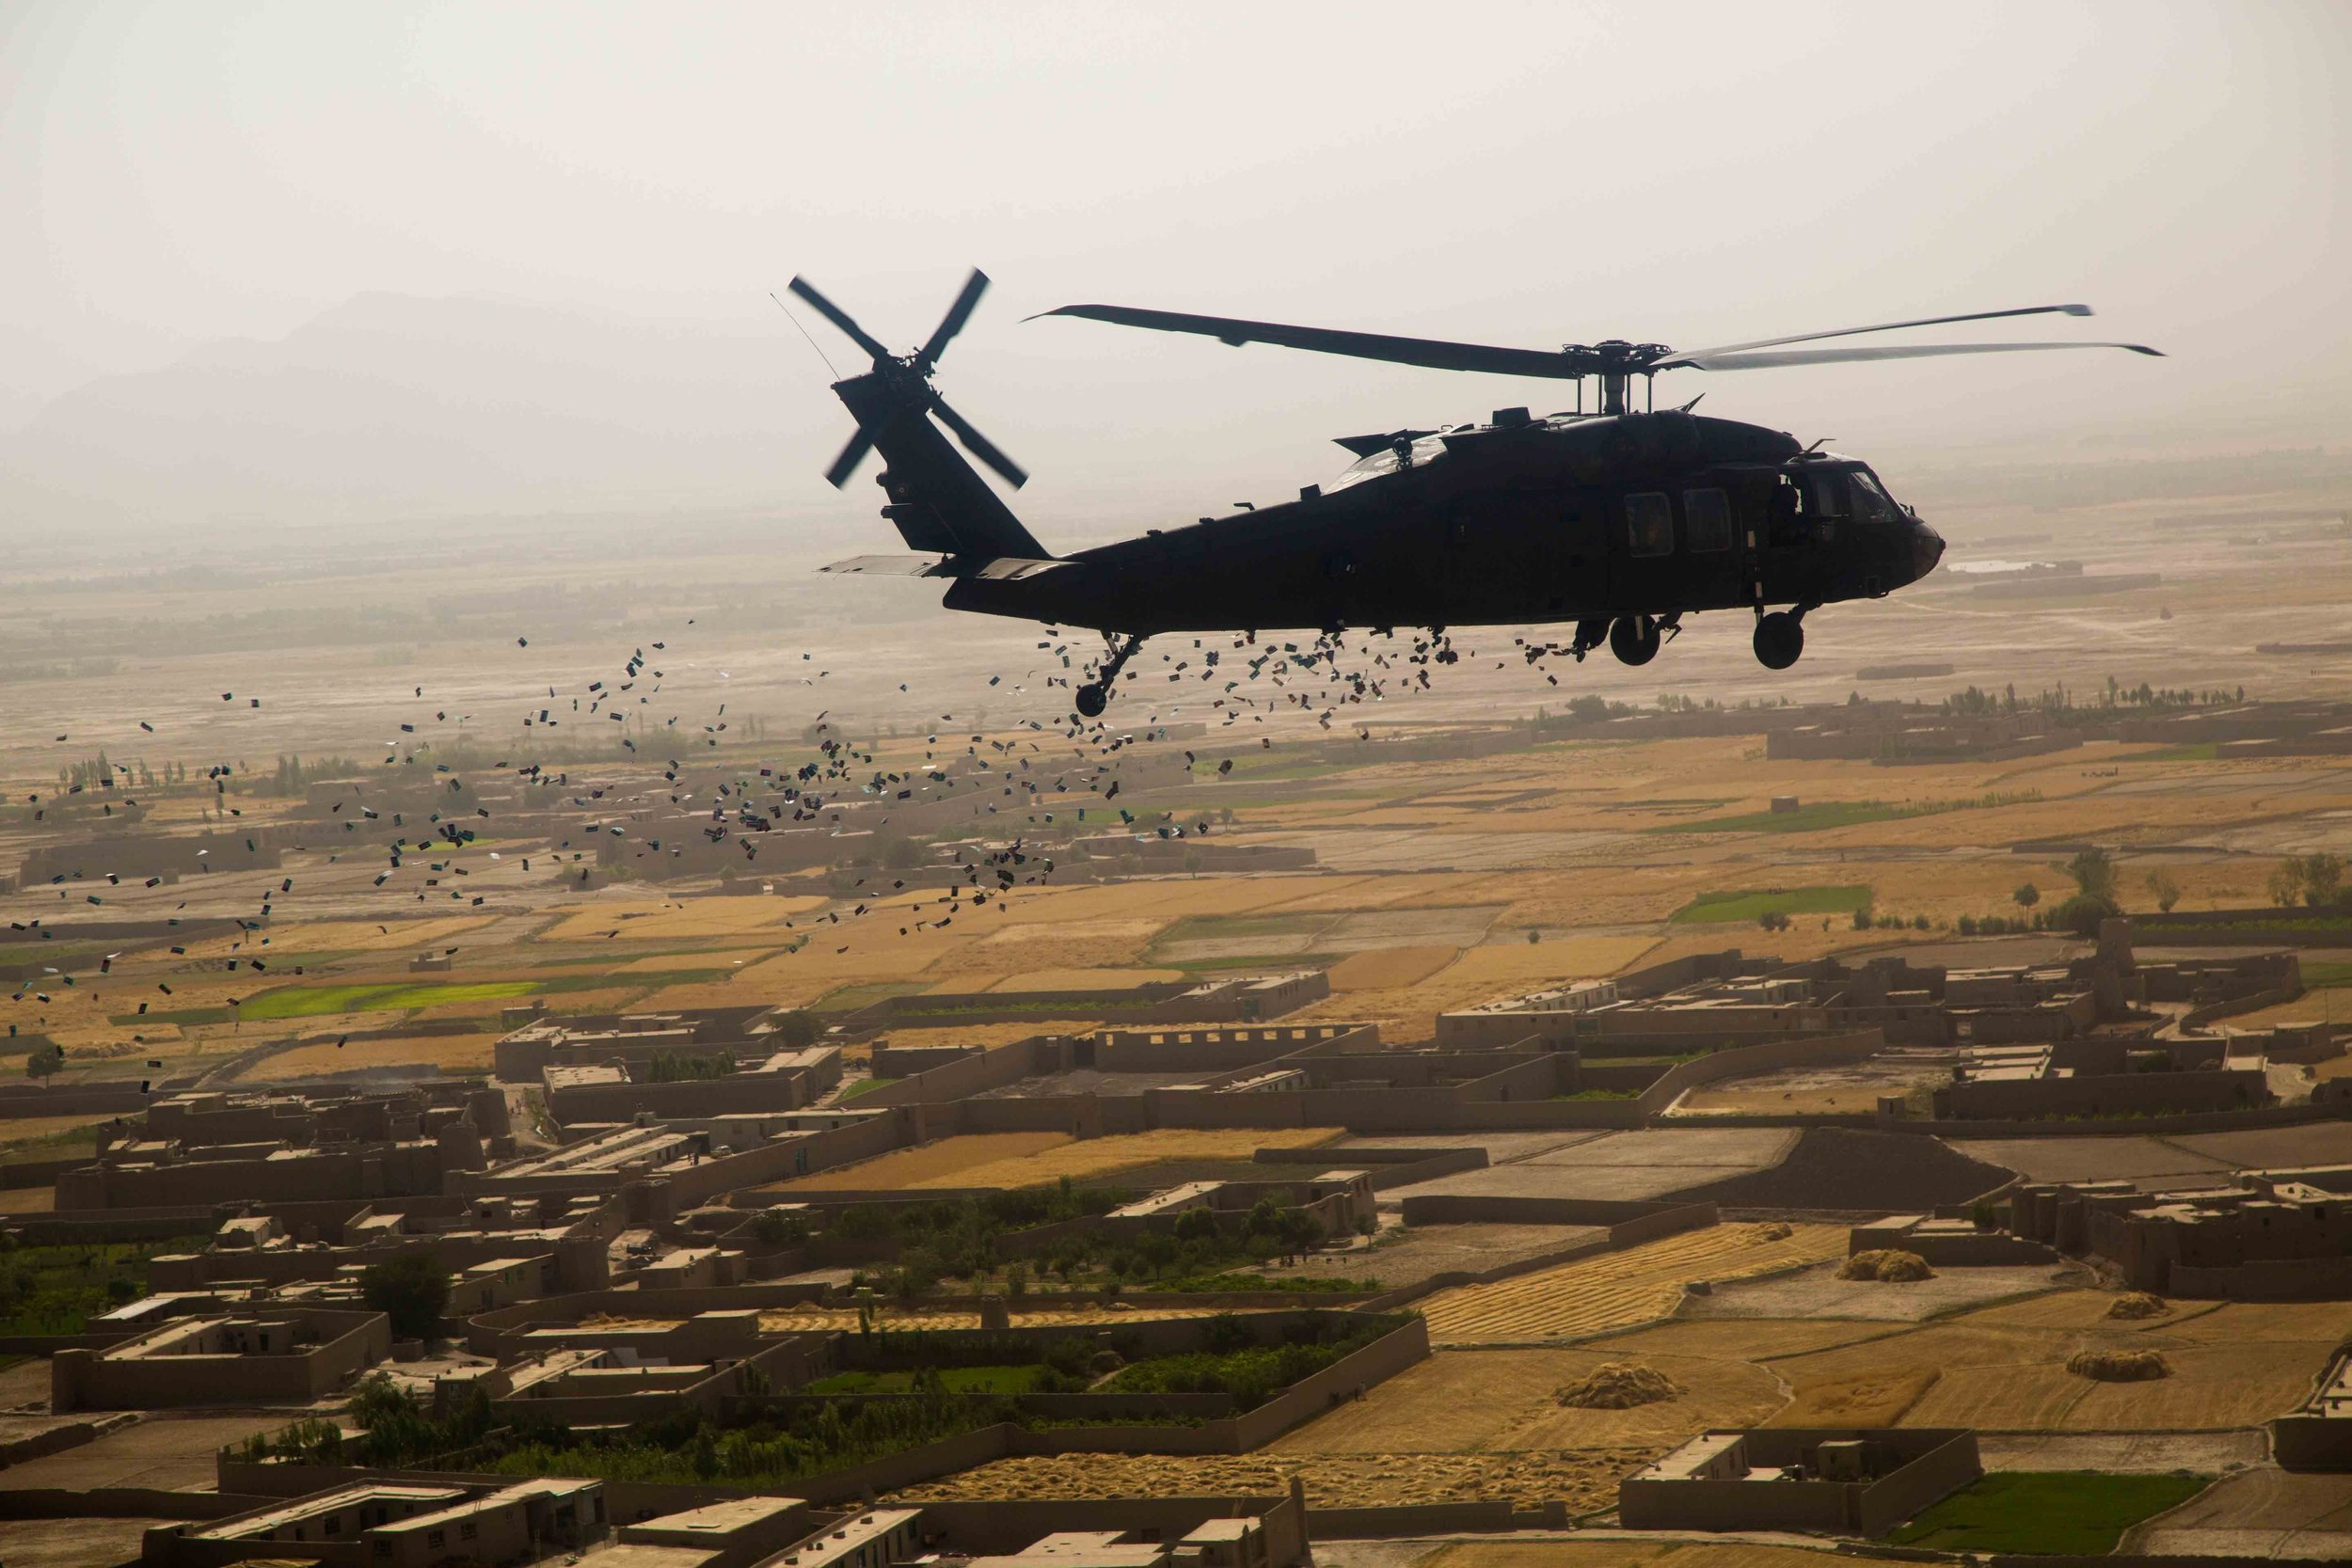 File photo shows coalition forces dropping leaflets over Afghanistan. (U.S. Army photo by Spc. Steven Hitchcock